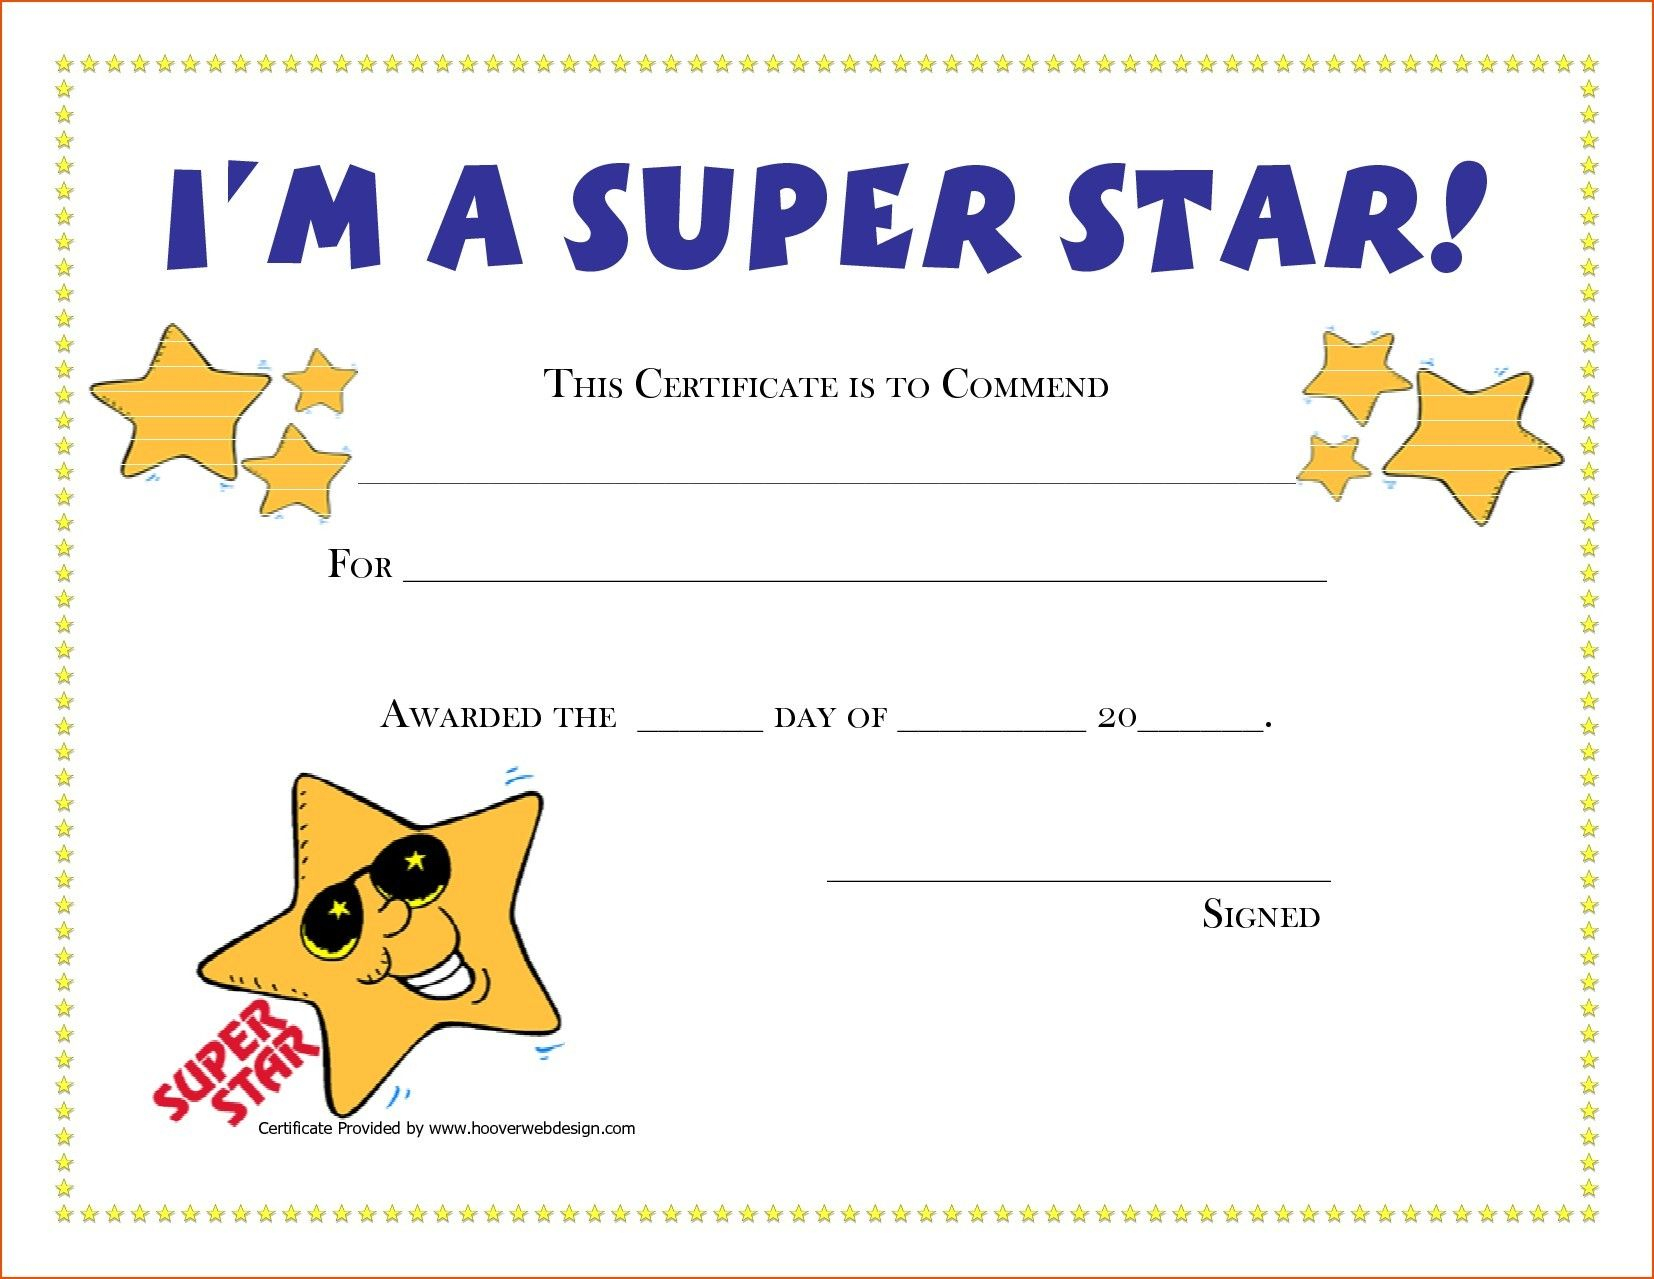 Template Certificate Blank Fresh Template Blank Award Certificate - Free Printable Swimming Certificates For Kids